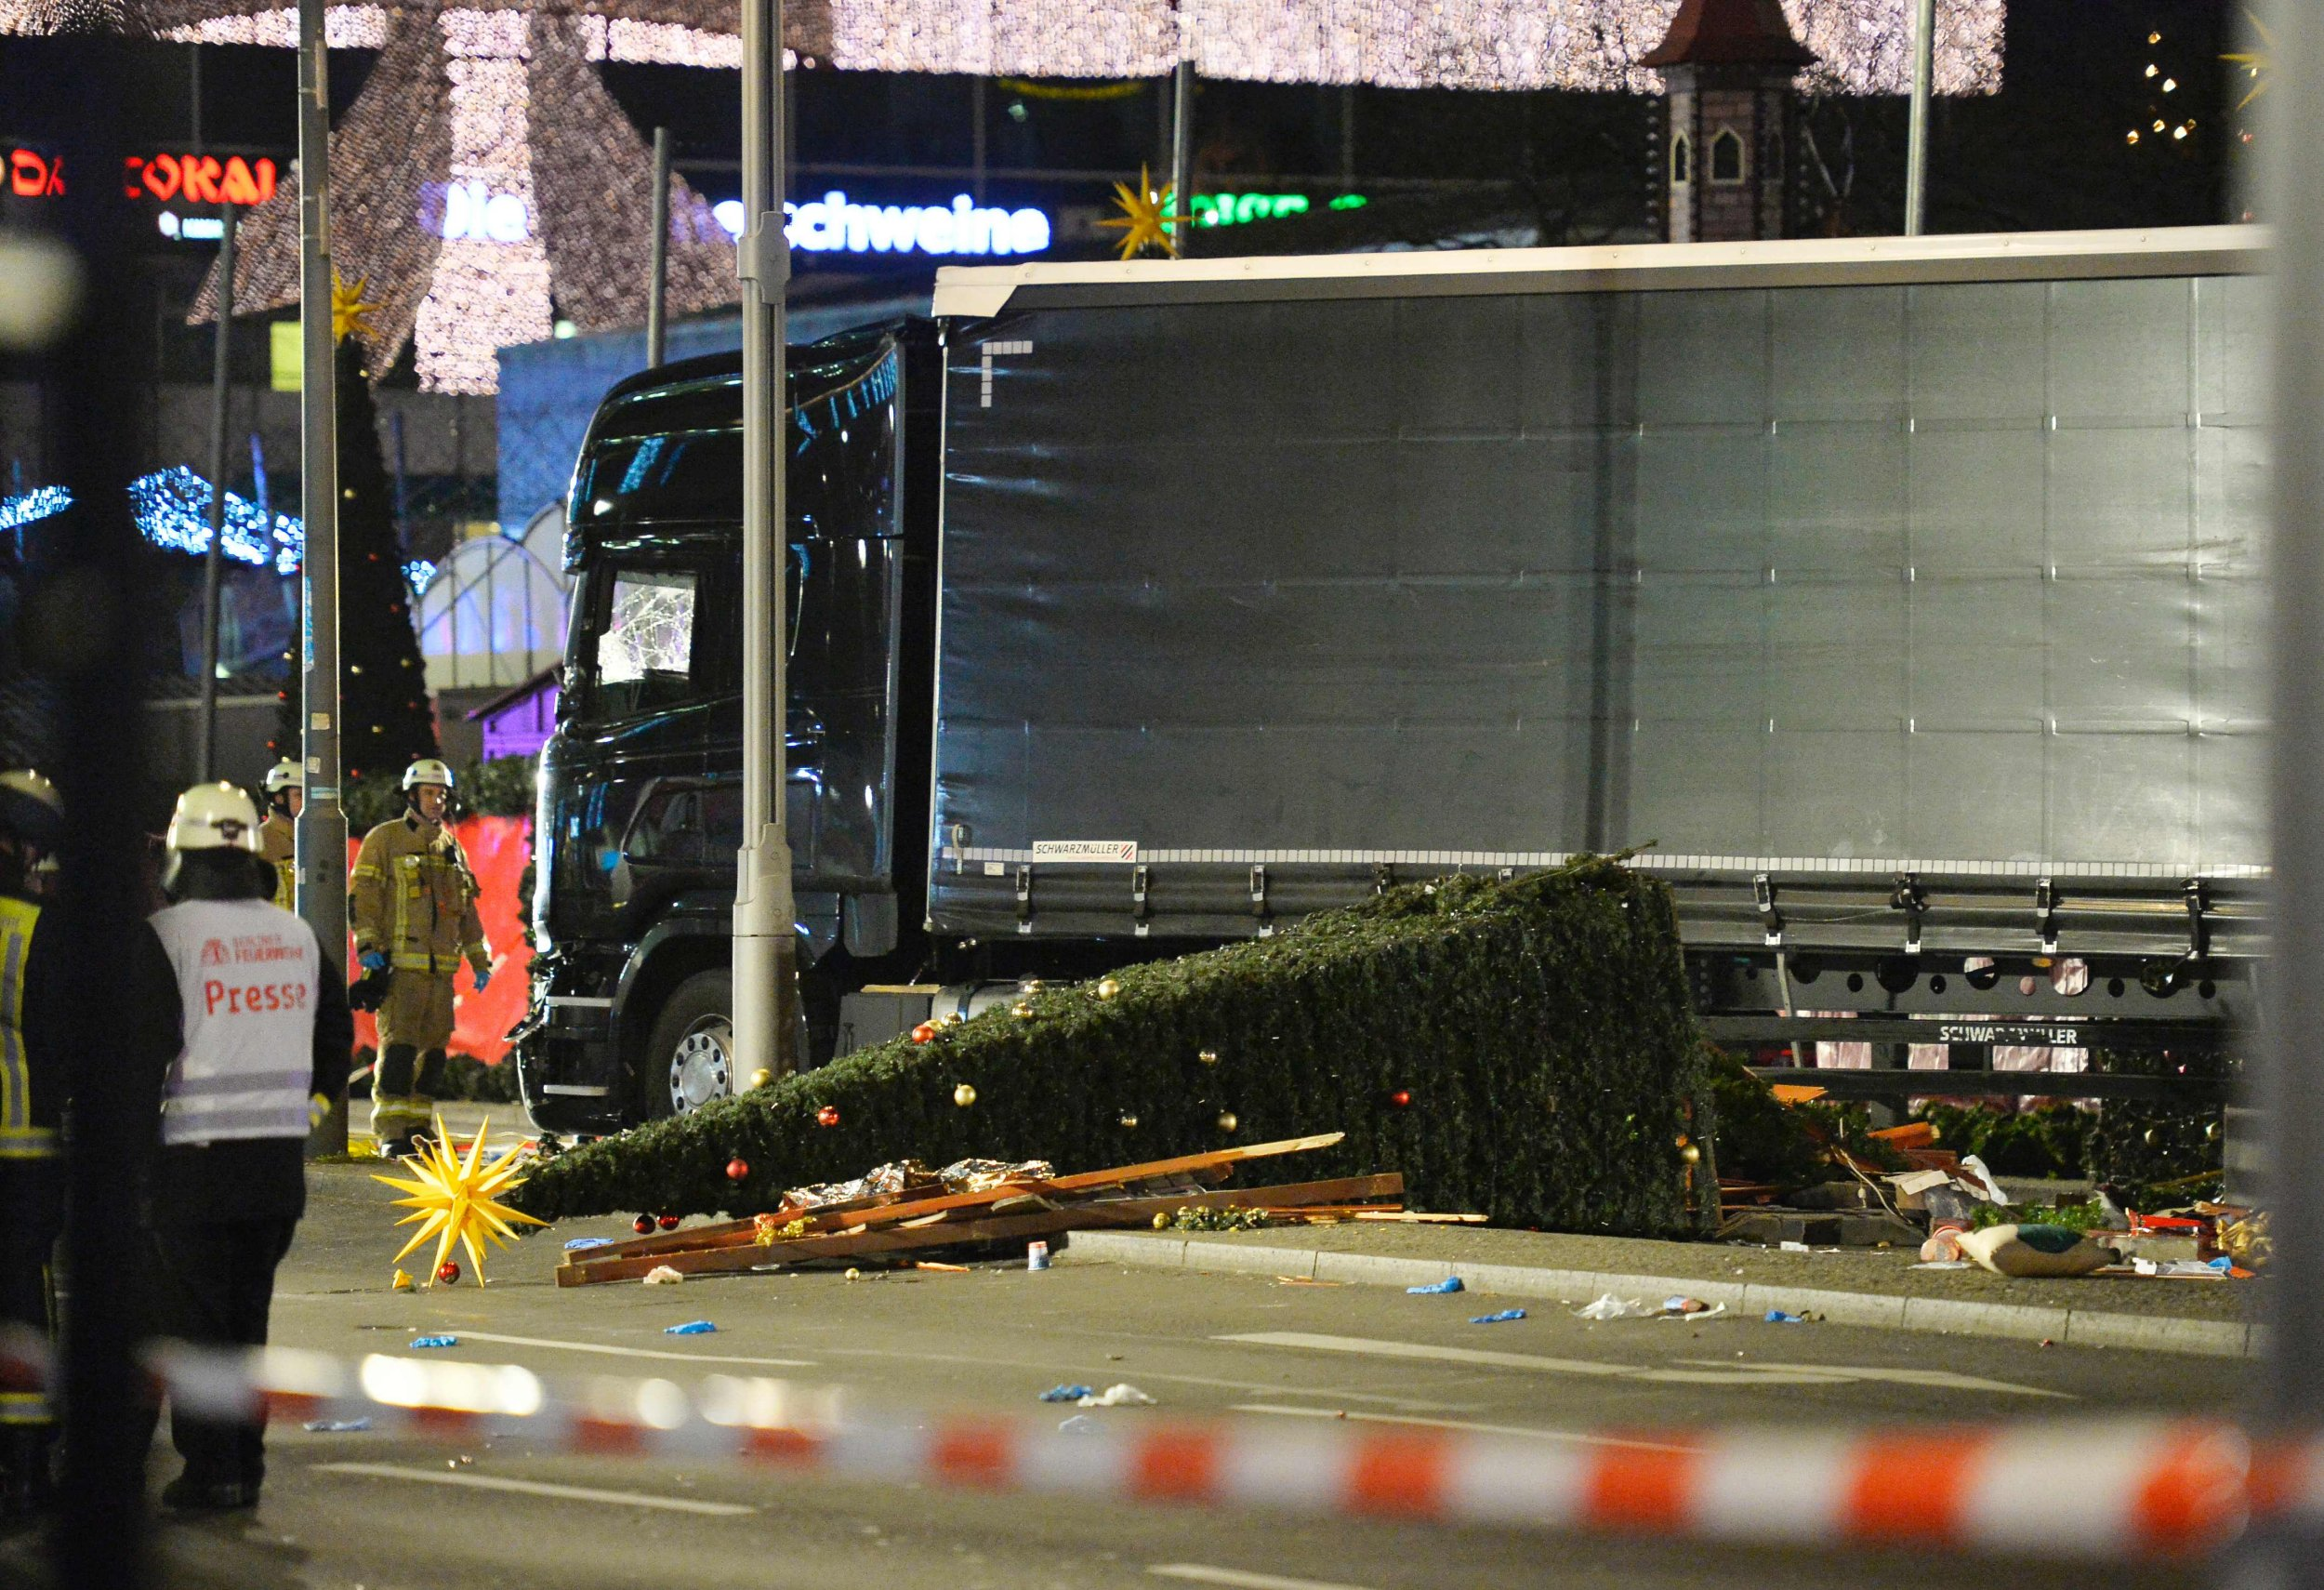 View of the truck that crashed into a christmas market at Ged¿chniskirche church in Berlin, on December 19, 2016 killing at least nine people and injuring at least 50 people. / AFP PHOTO / Odd ANDERSENODD ANDERSEN/AFP/Getty Images